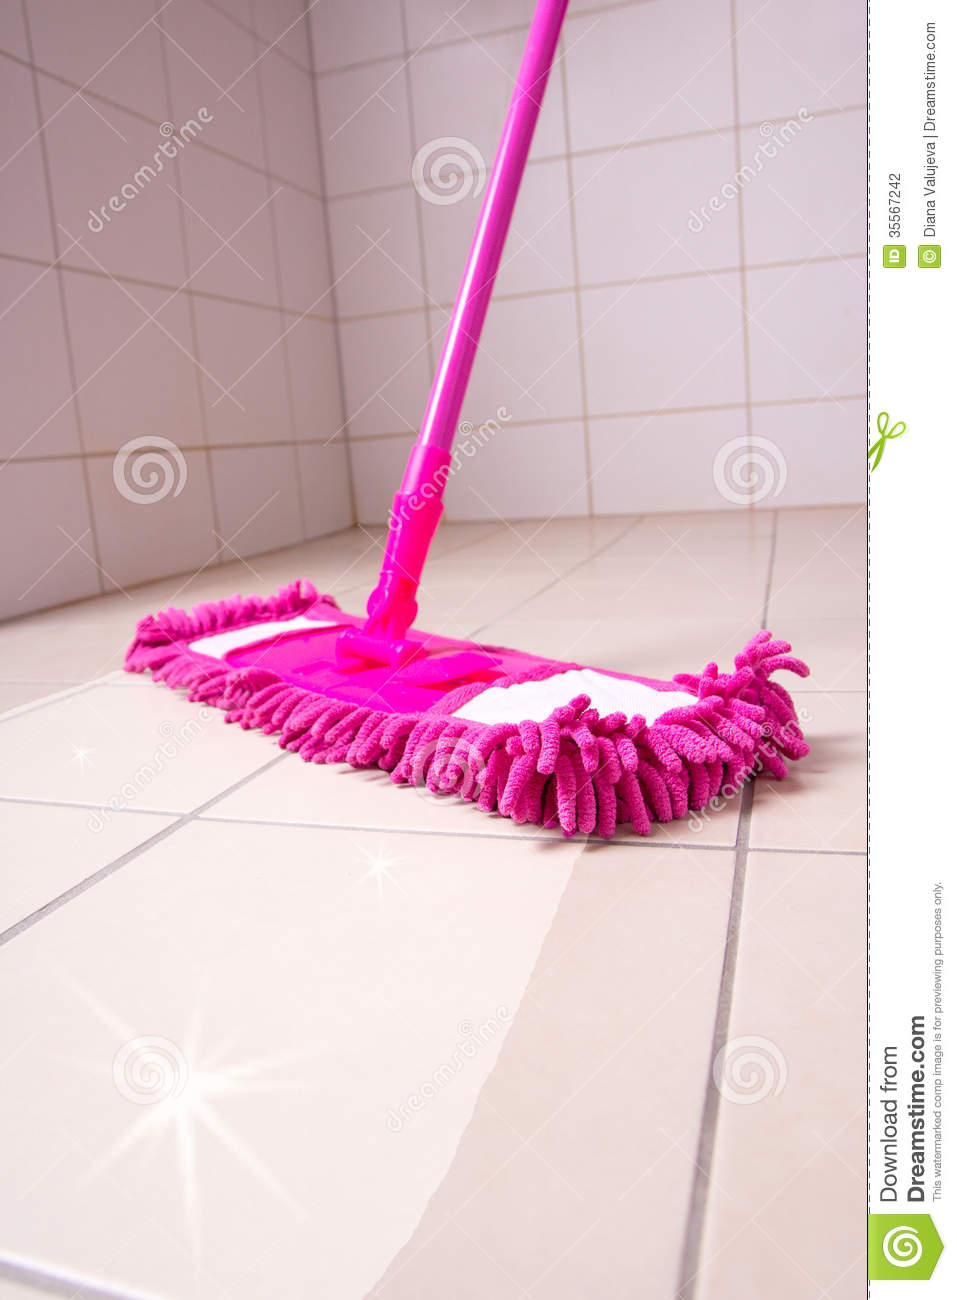 Cleaning The Floor With Pink Mop Stock Photography